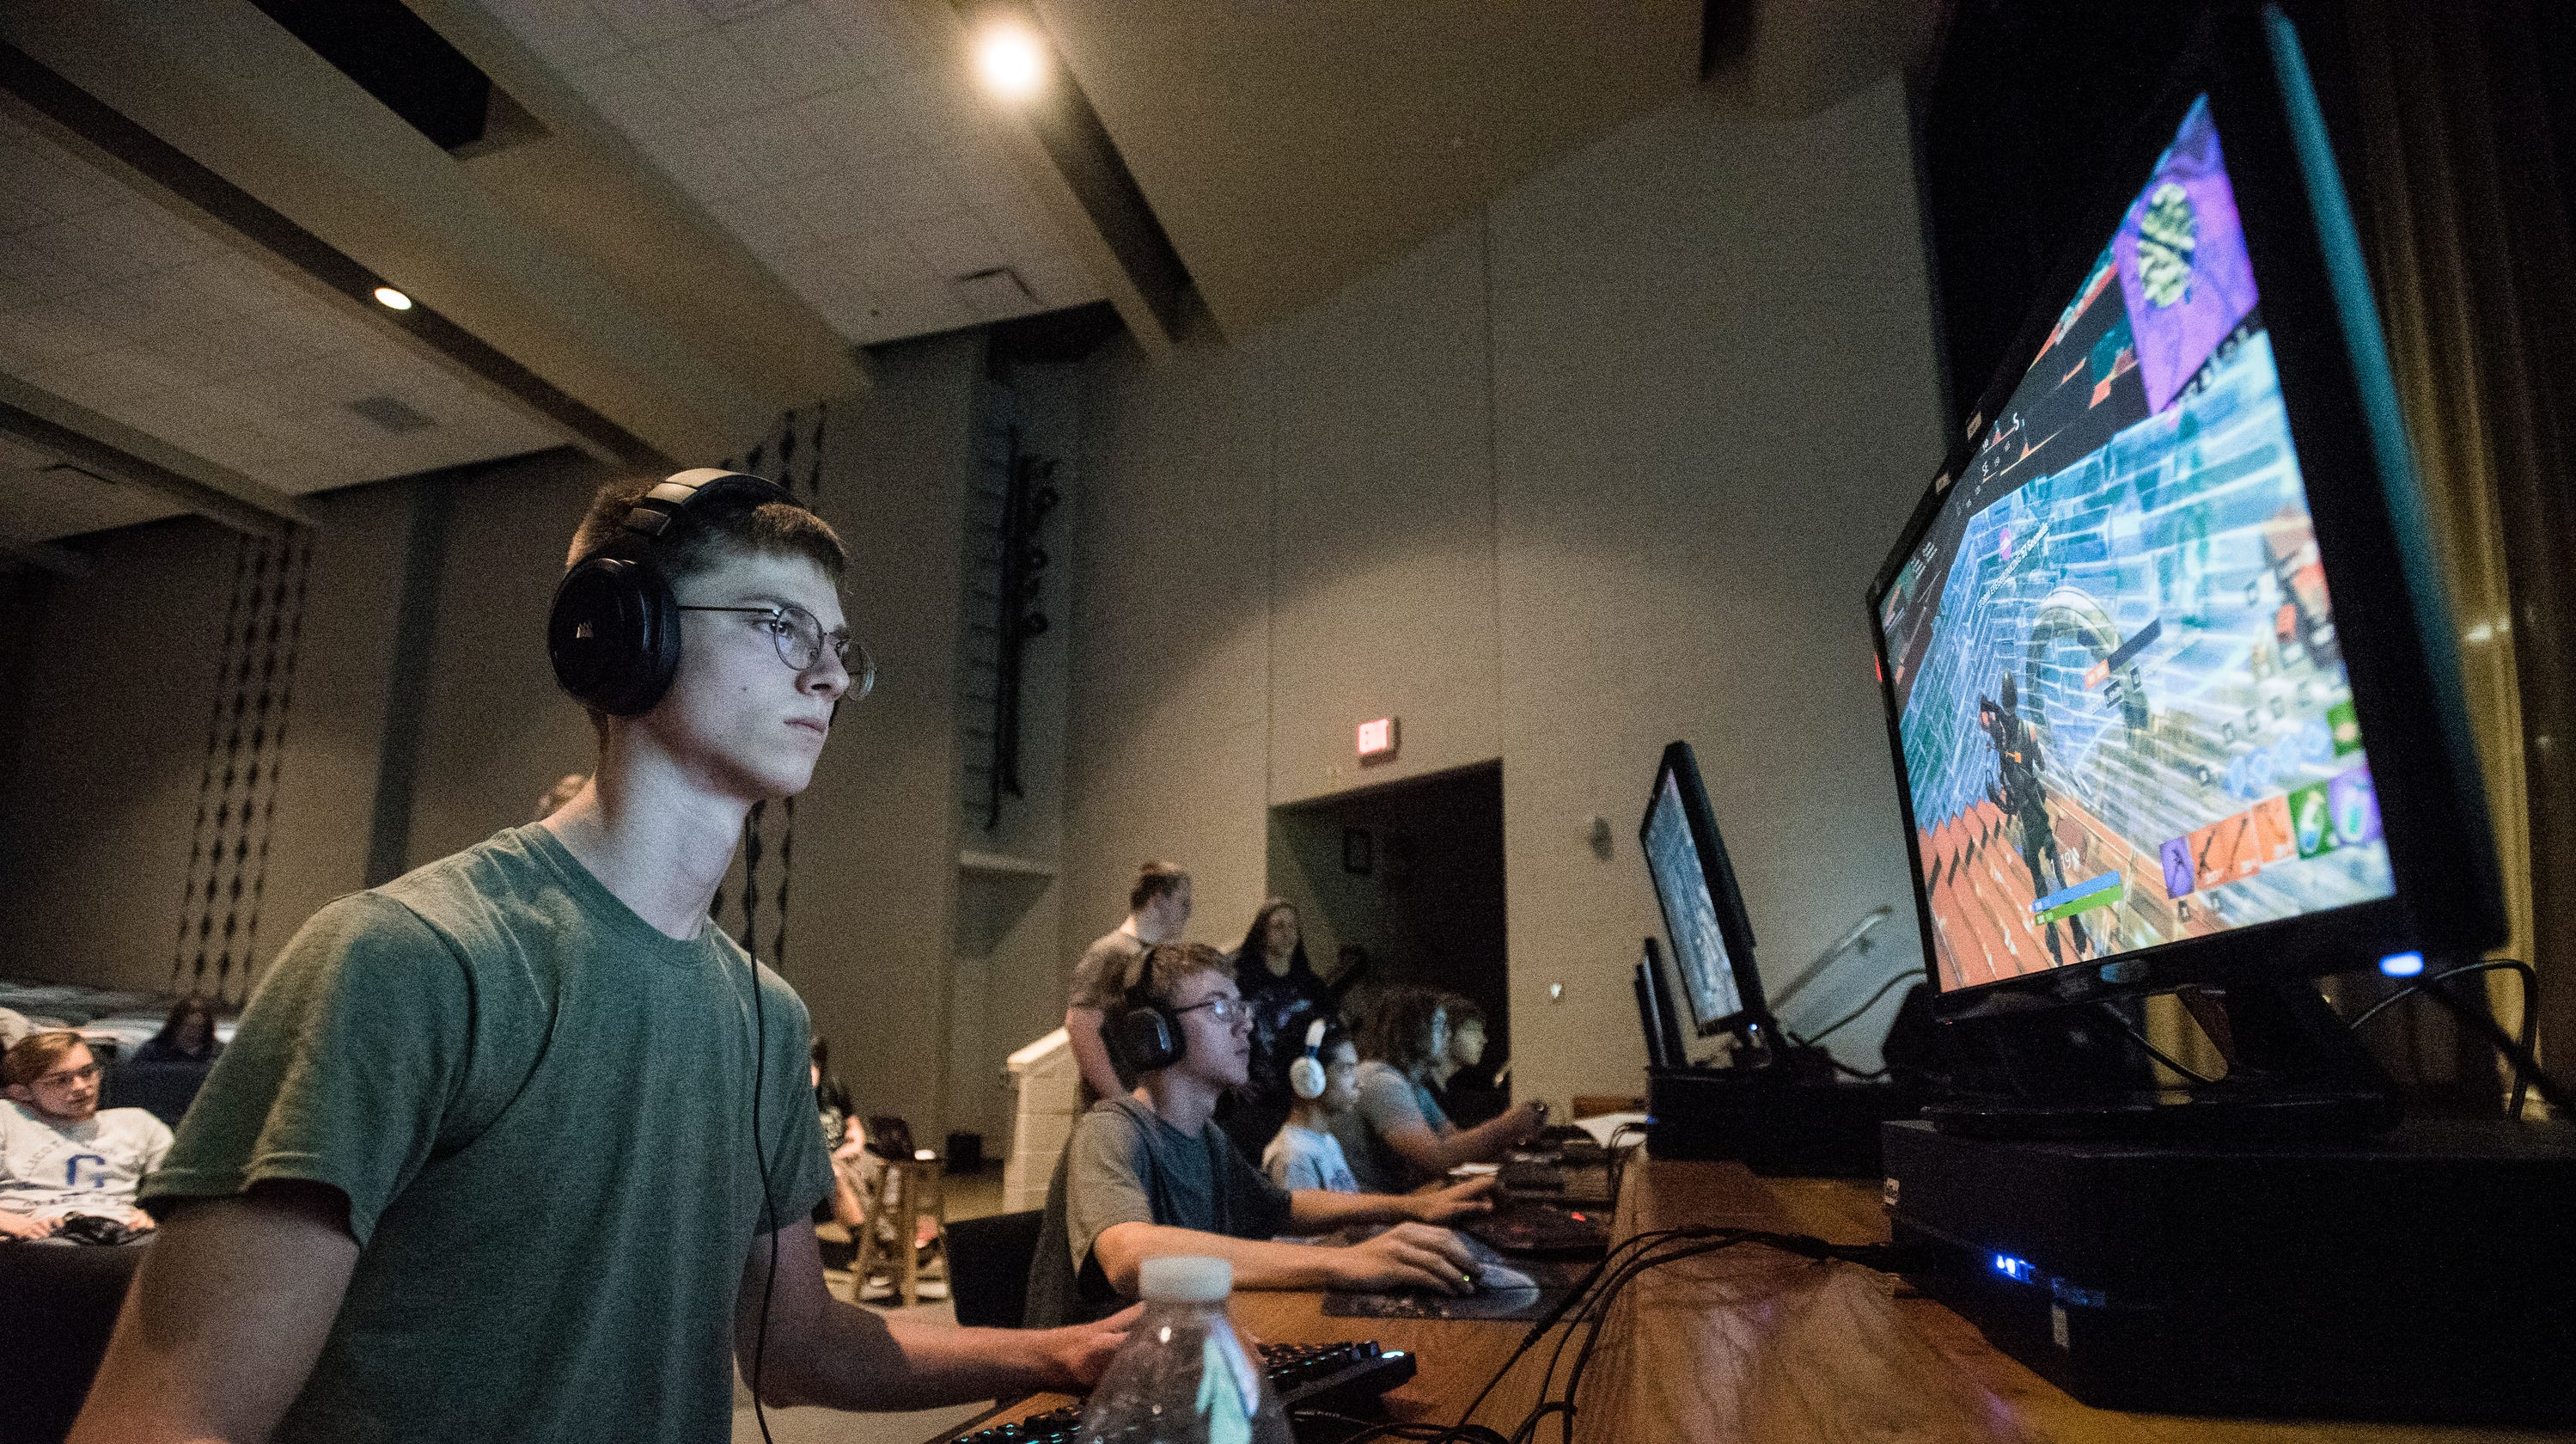 Local schools compete in the area's first esports tournament